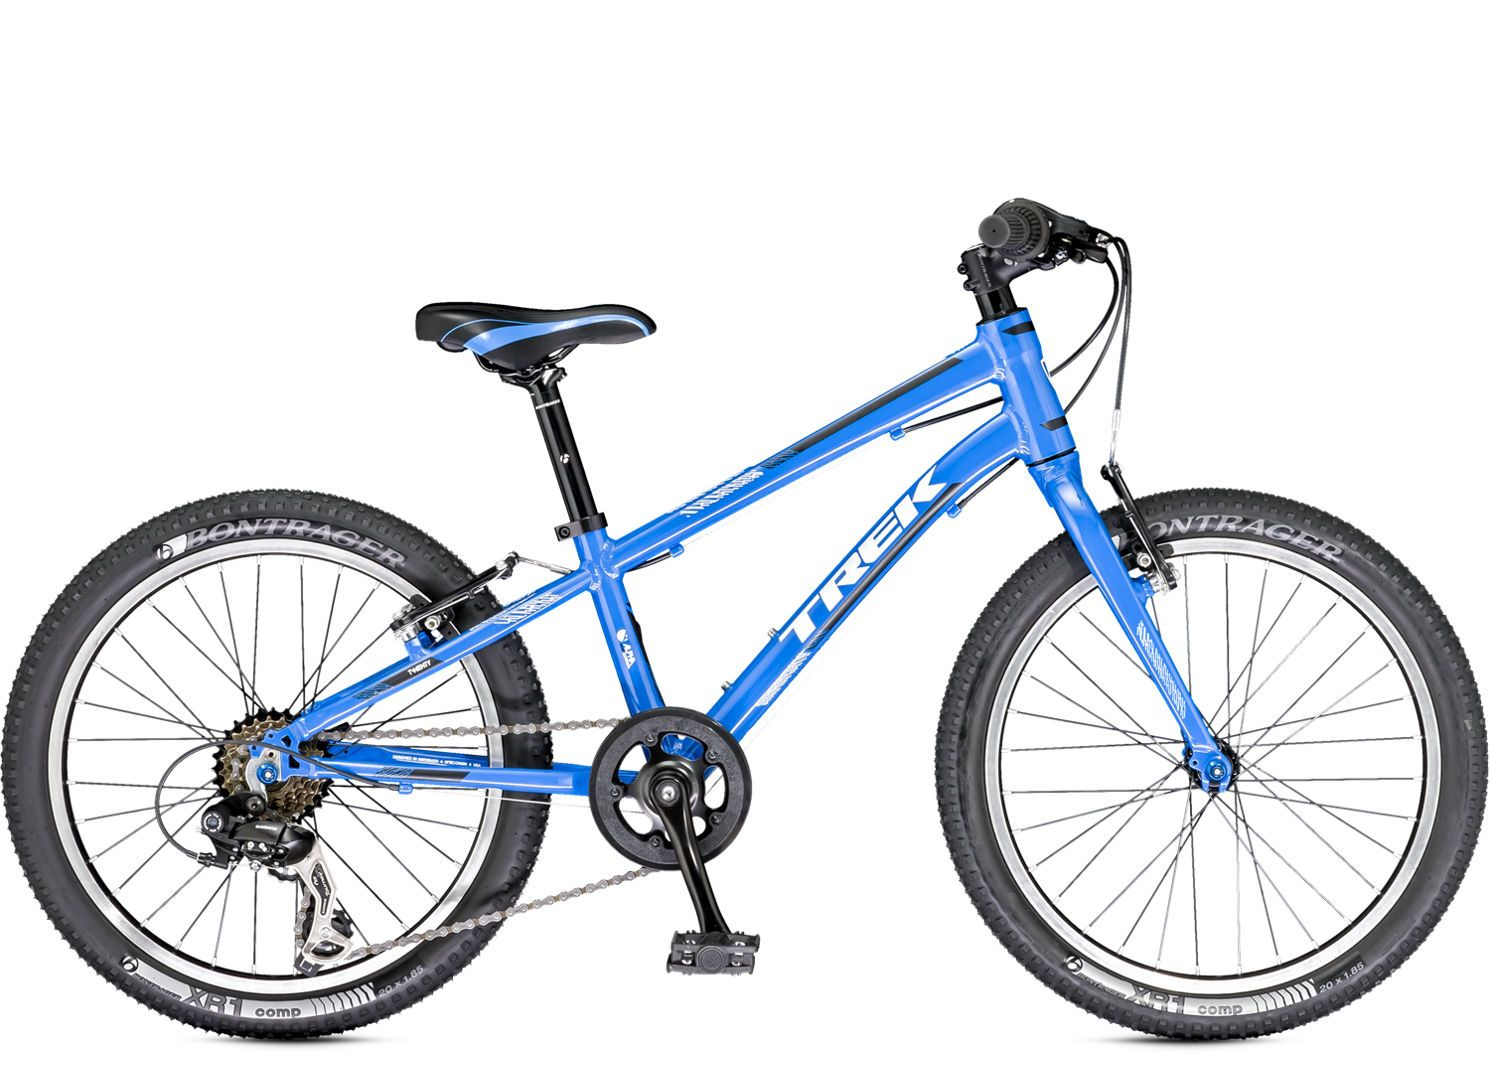 Kids Superfly 20 Kids Collection Trek Bicycle Trek Bicycle Trek Bikes Kids Bike